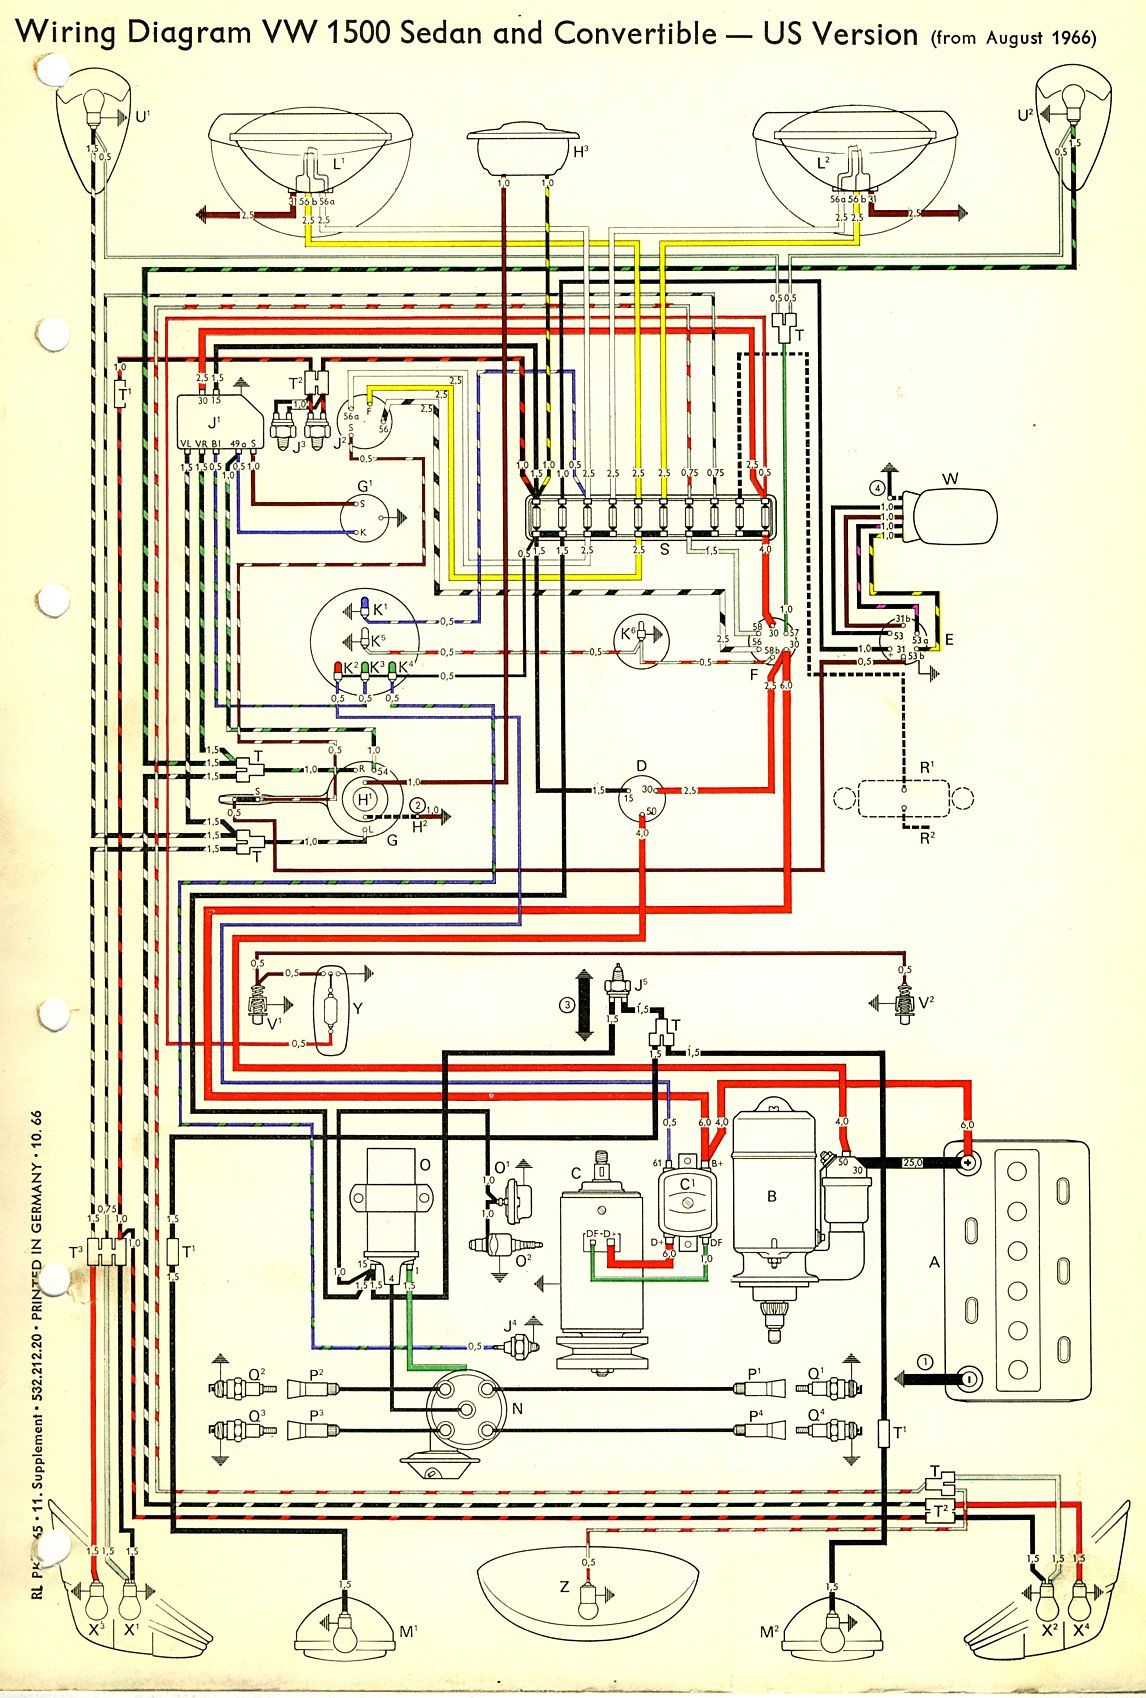 1adf990c0efb617c789fdd21338448b0 1967 beetle wiring diagram (usa) thegoldenbug com best 1967 vw Toyota Corolla Wiring Harness Diagram at cos-gaming.co